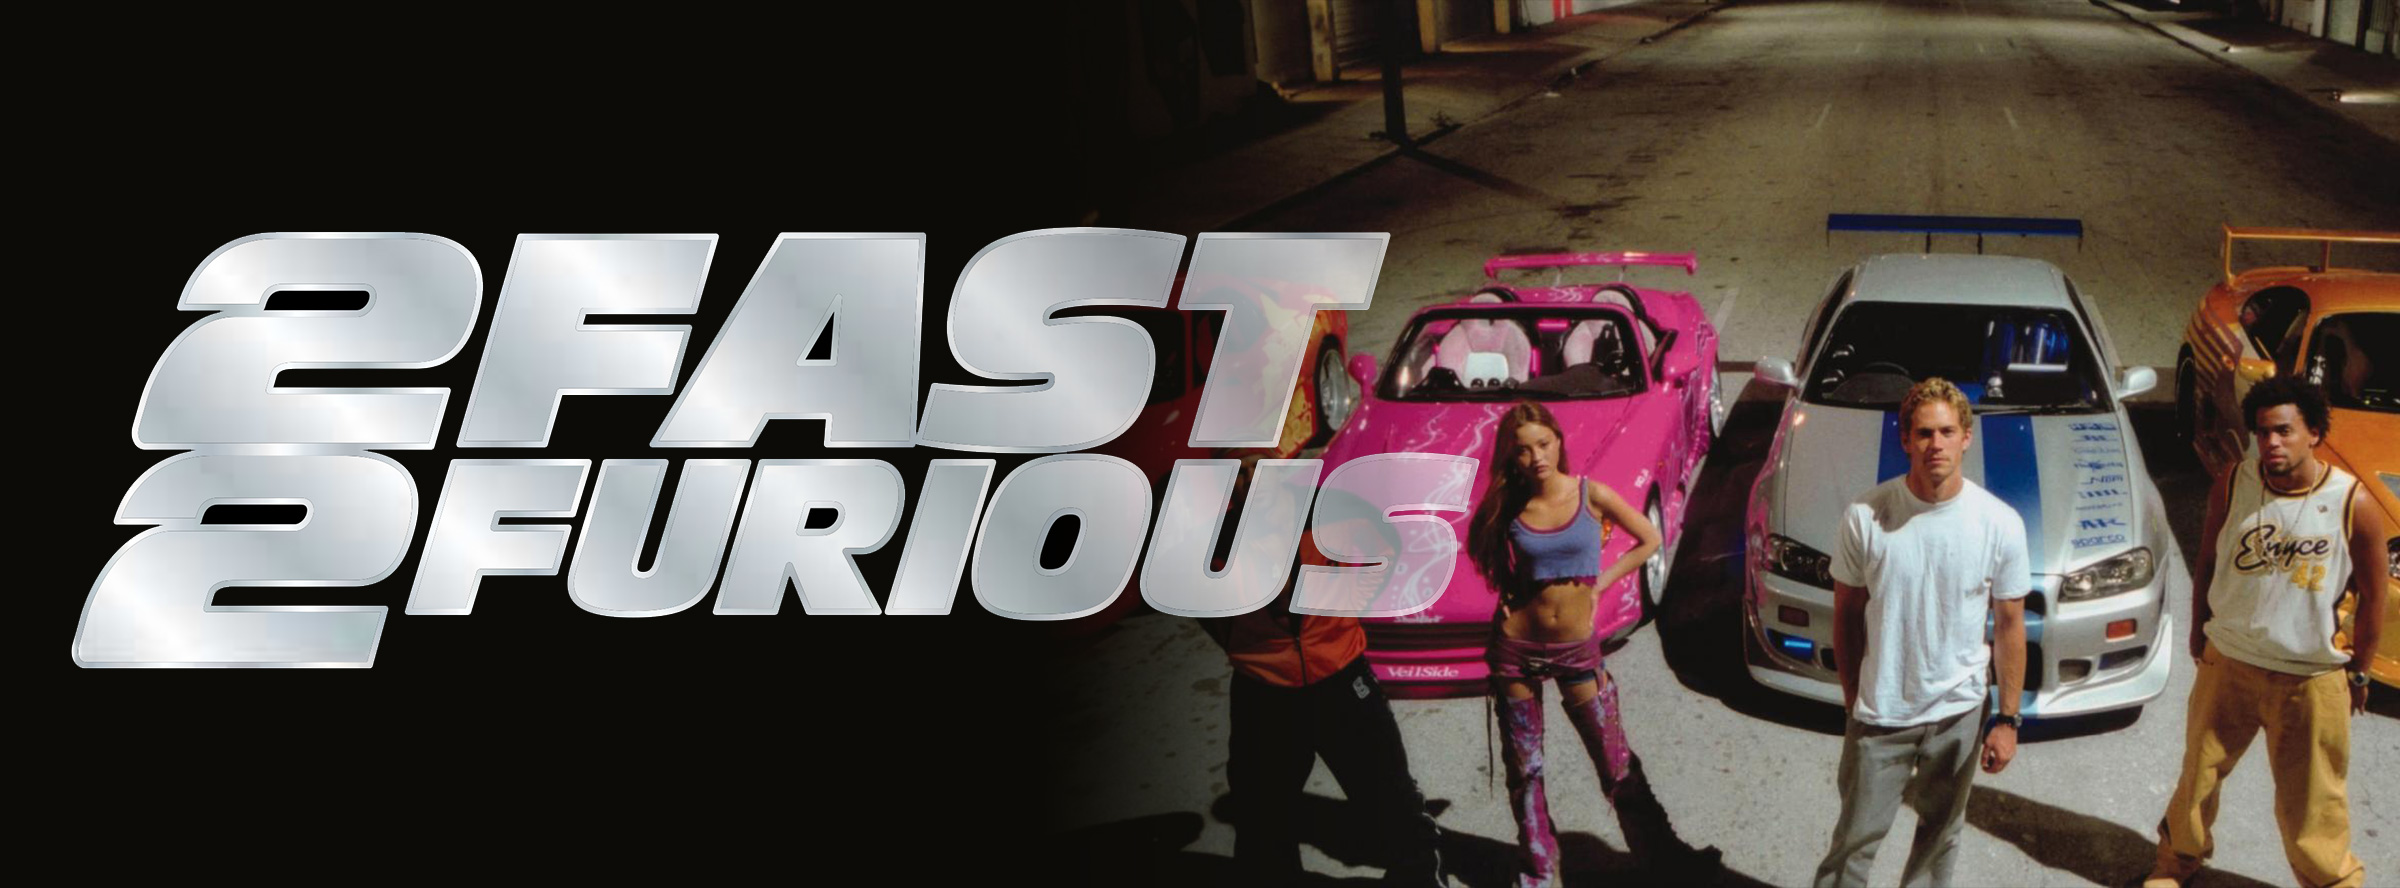 Slider Image for 2 Fast 2 Furious